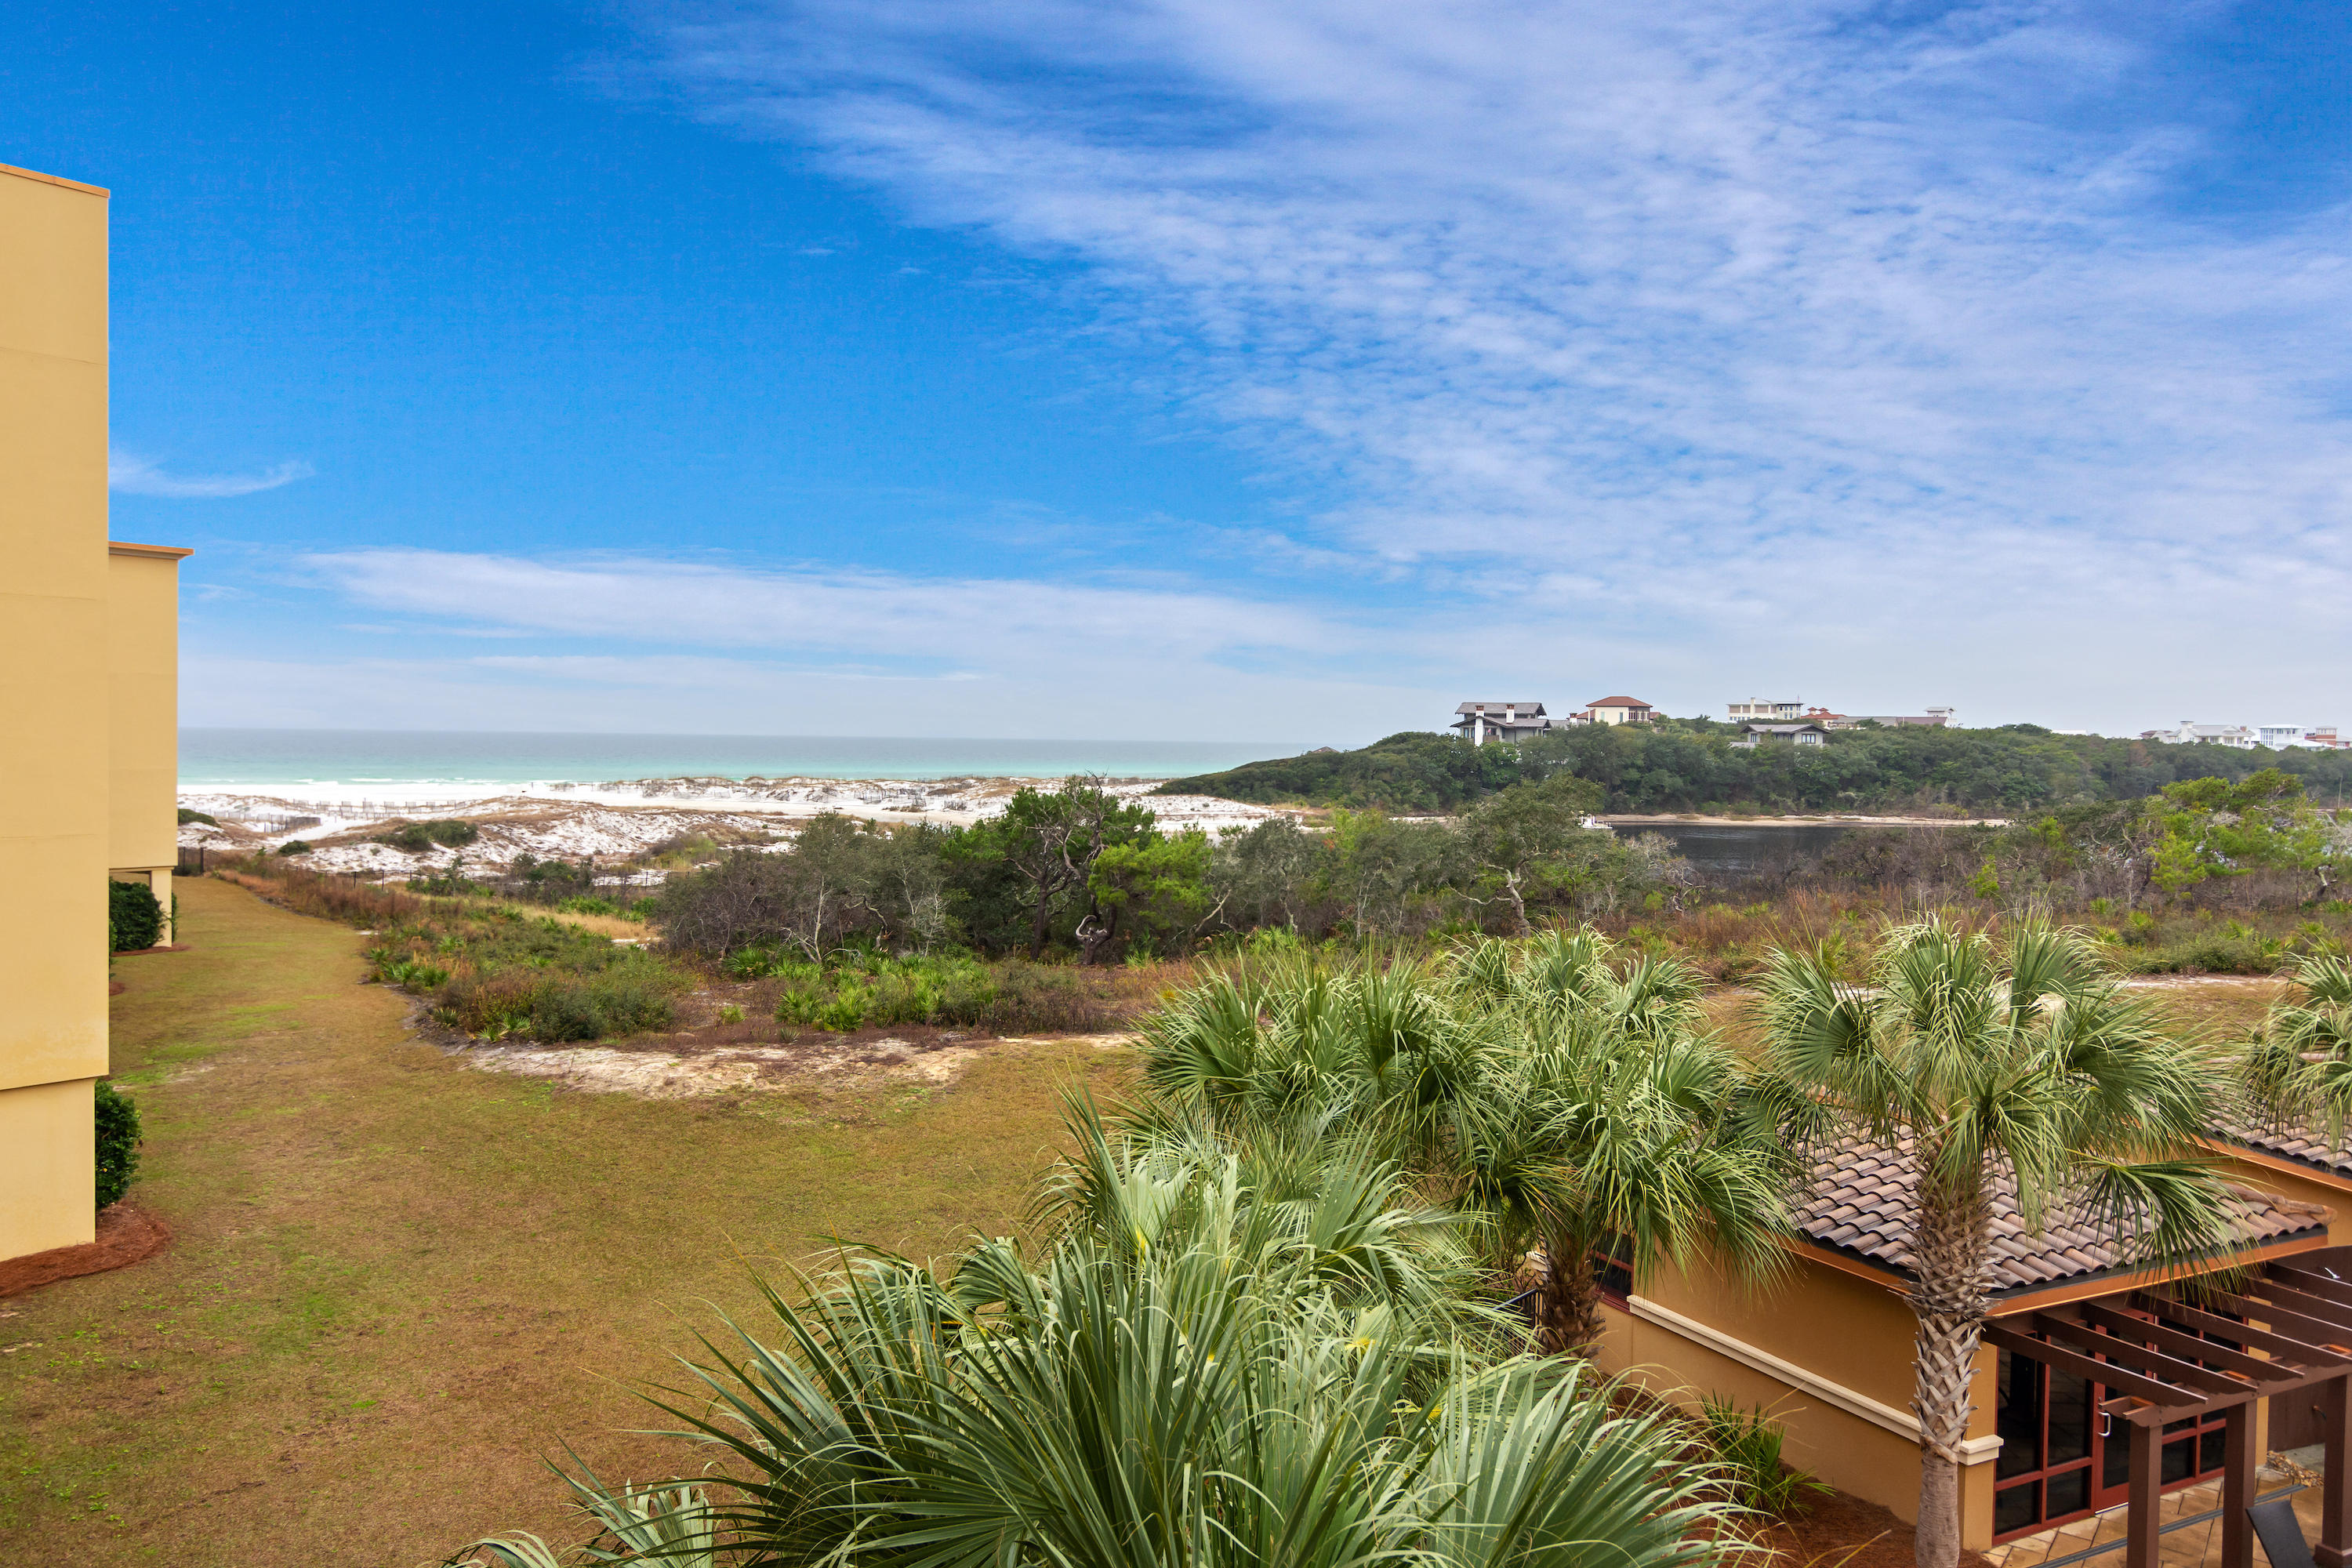 BEACH AND LAKE VIEW FROM YOUR OVERSIZED BALCONY!!!!  This fully furnished condominium residence offers the best of the 30A lifestyle.  Enjoy open, luxurious living while taking in breathtaking views of Redfish Lake & the Gulf of Mexico.  With over 2,200 square feet of living space, this 3 bedroom / 3.5 Bath home has everything needed to fully enjoy beach life.  The balcony is accessed from the living room or the master bedroom and each of the two guest bedrooms have their own private baths.  Some of the features include Viking appliances, a gas range with pot filler, 10' ceilings, crown molding, a large pantry, a wet bar with wine cooler and ice maker.  This luxury condo is nestled in the private and secluded beach community of Sanctuary by the Sea. Call today to schedule your appointment.